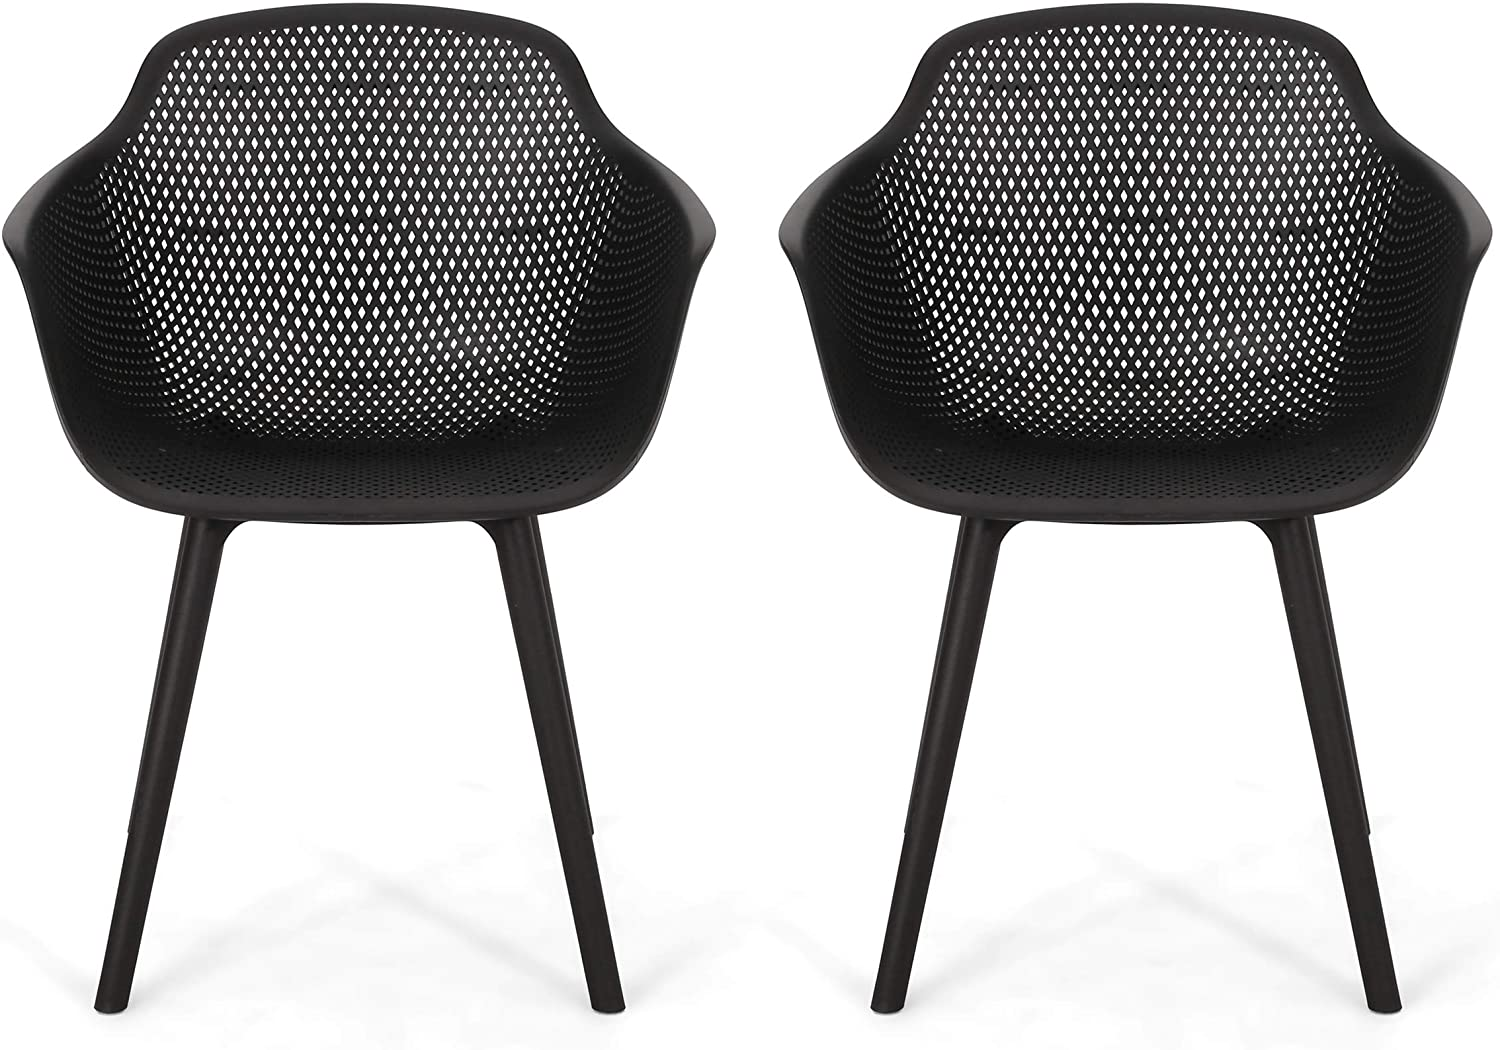 Christopher Knight Home 312466 Davina Outdoor Dining Chair (Set of 2), Black